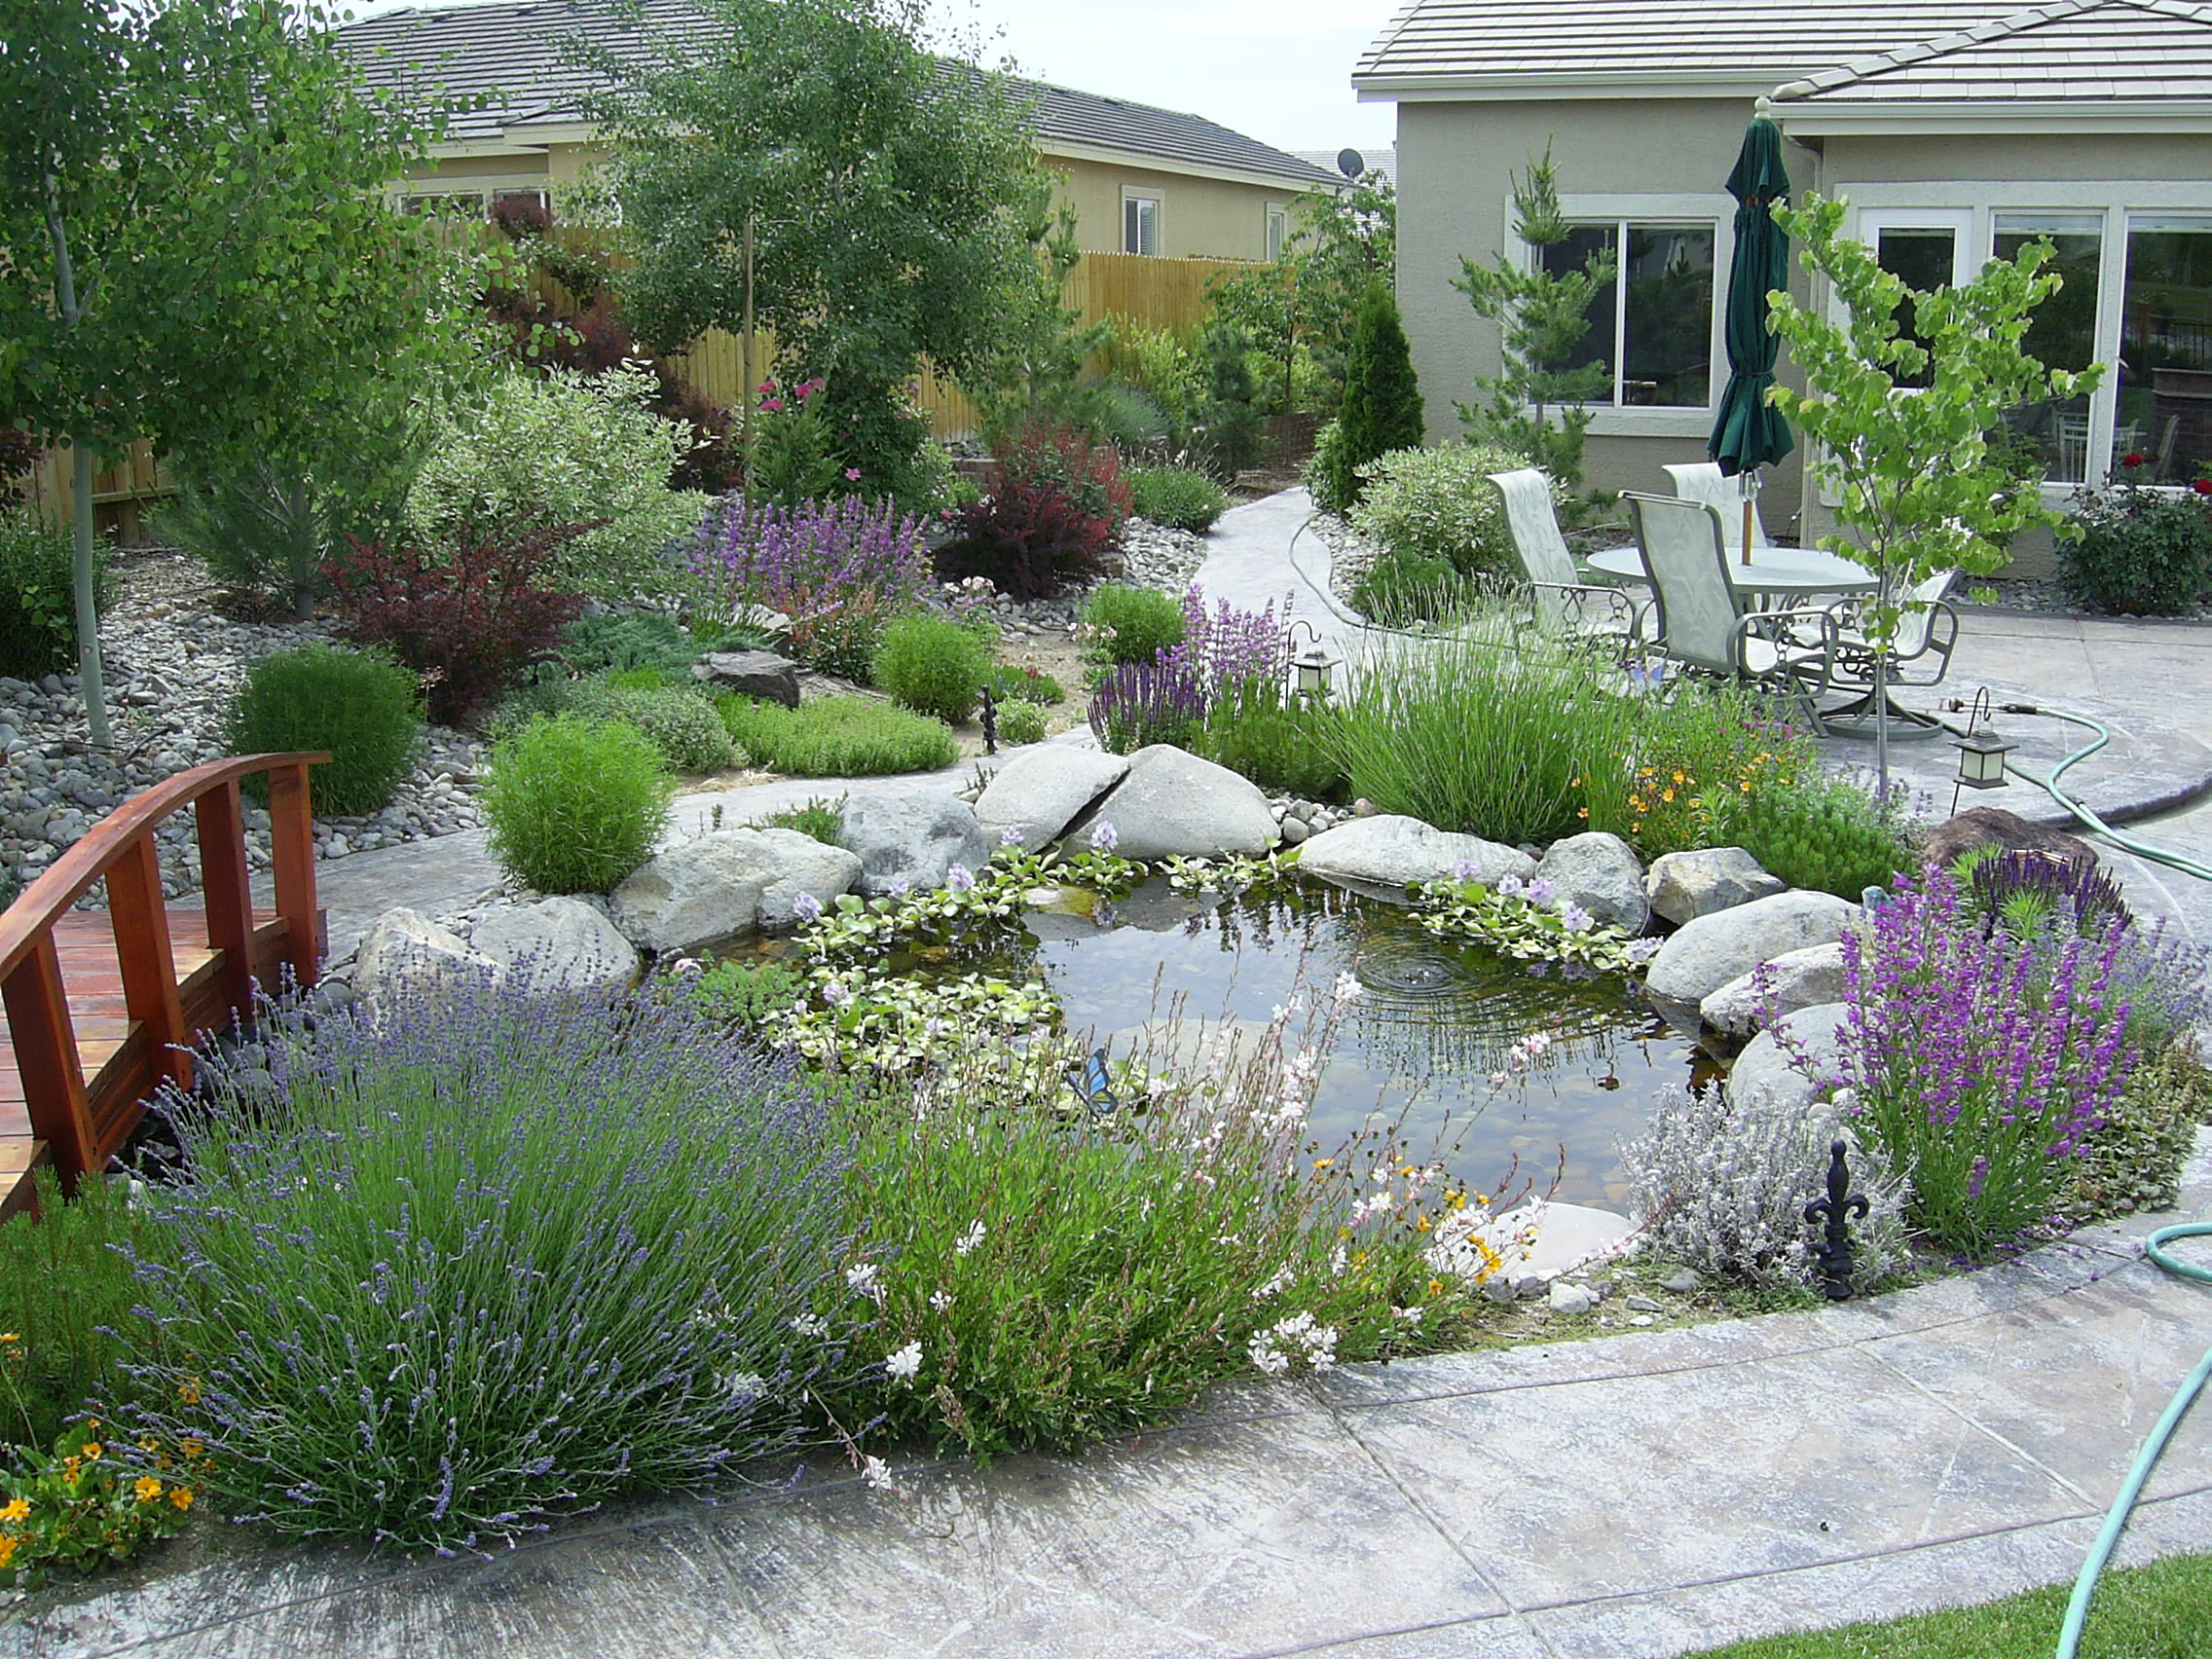 Landscape and garden design implications of water for Landscape garden ideas pictures